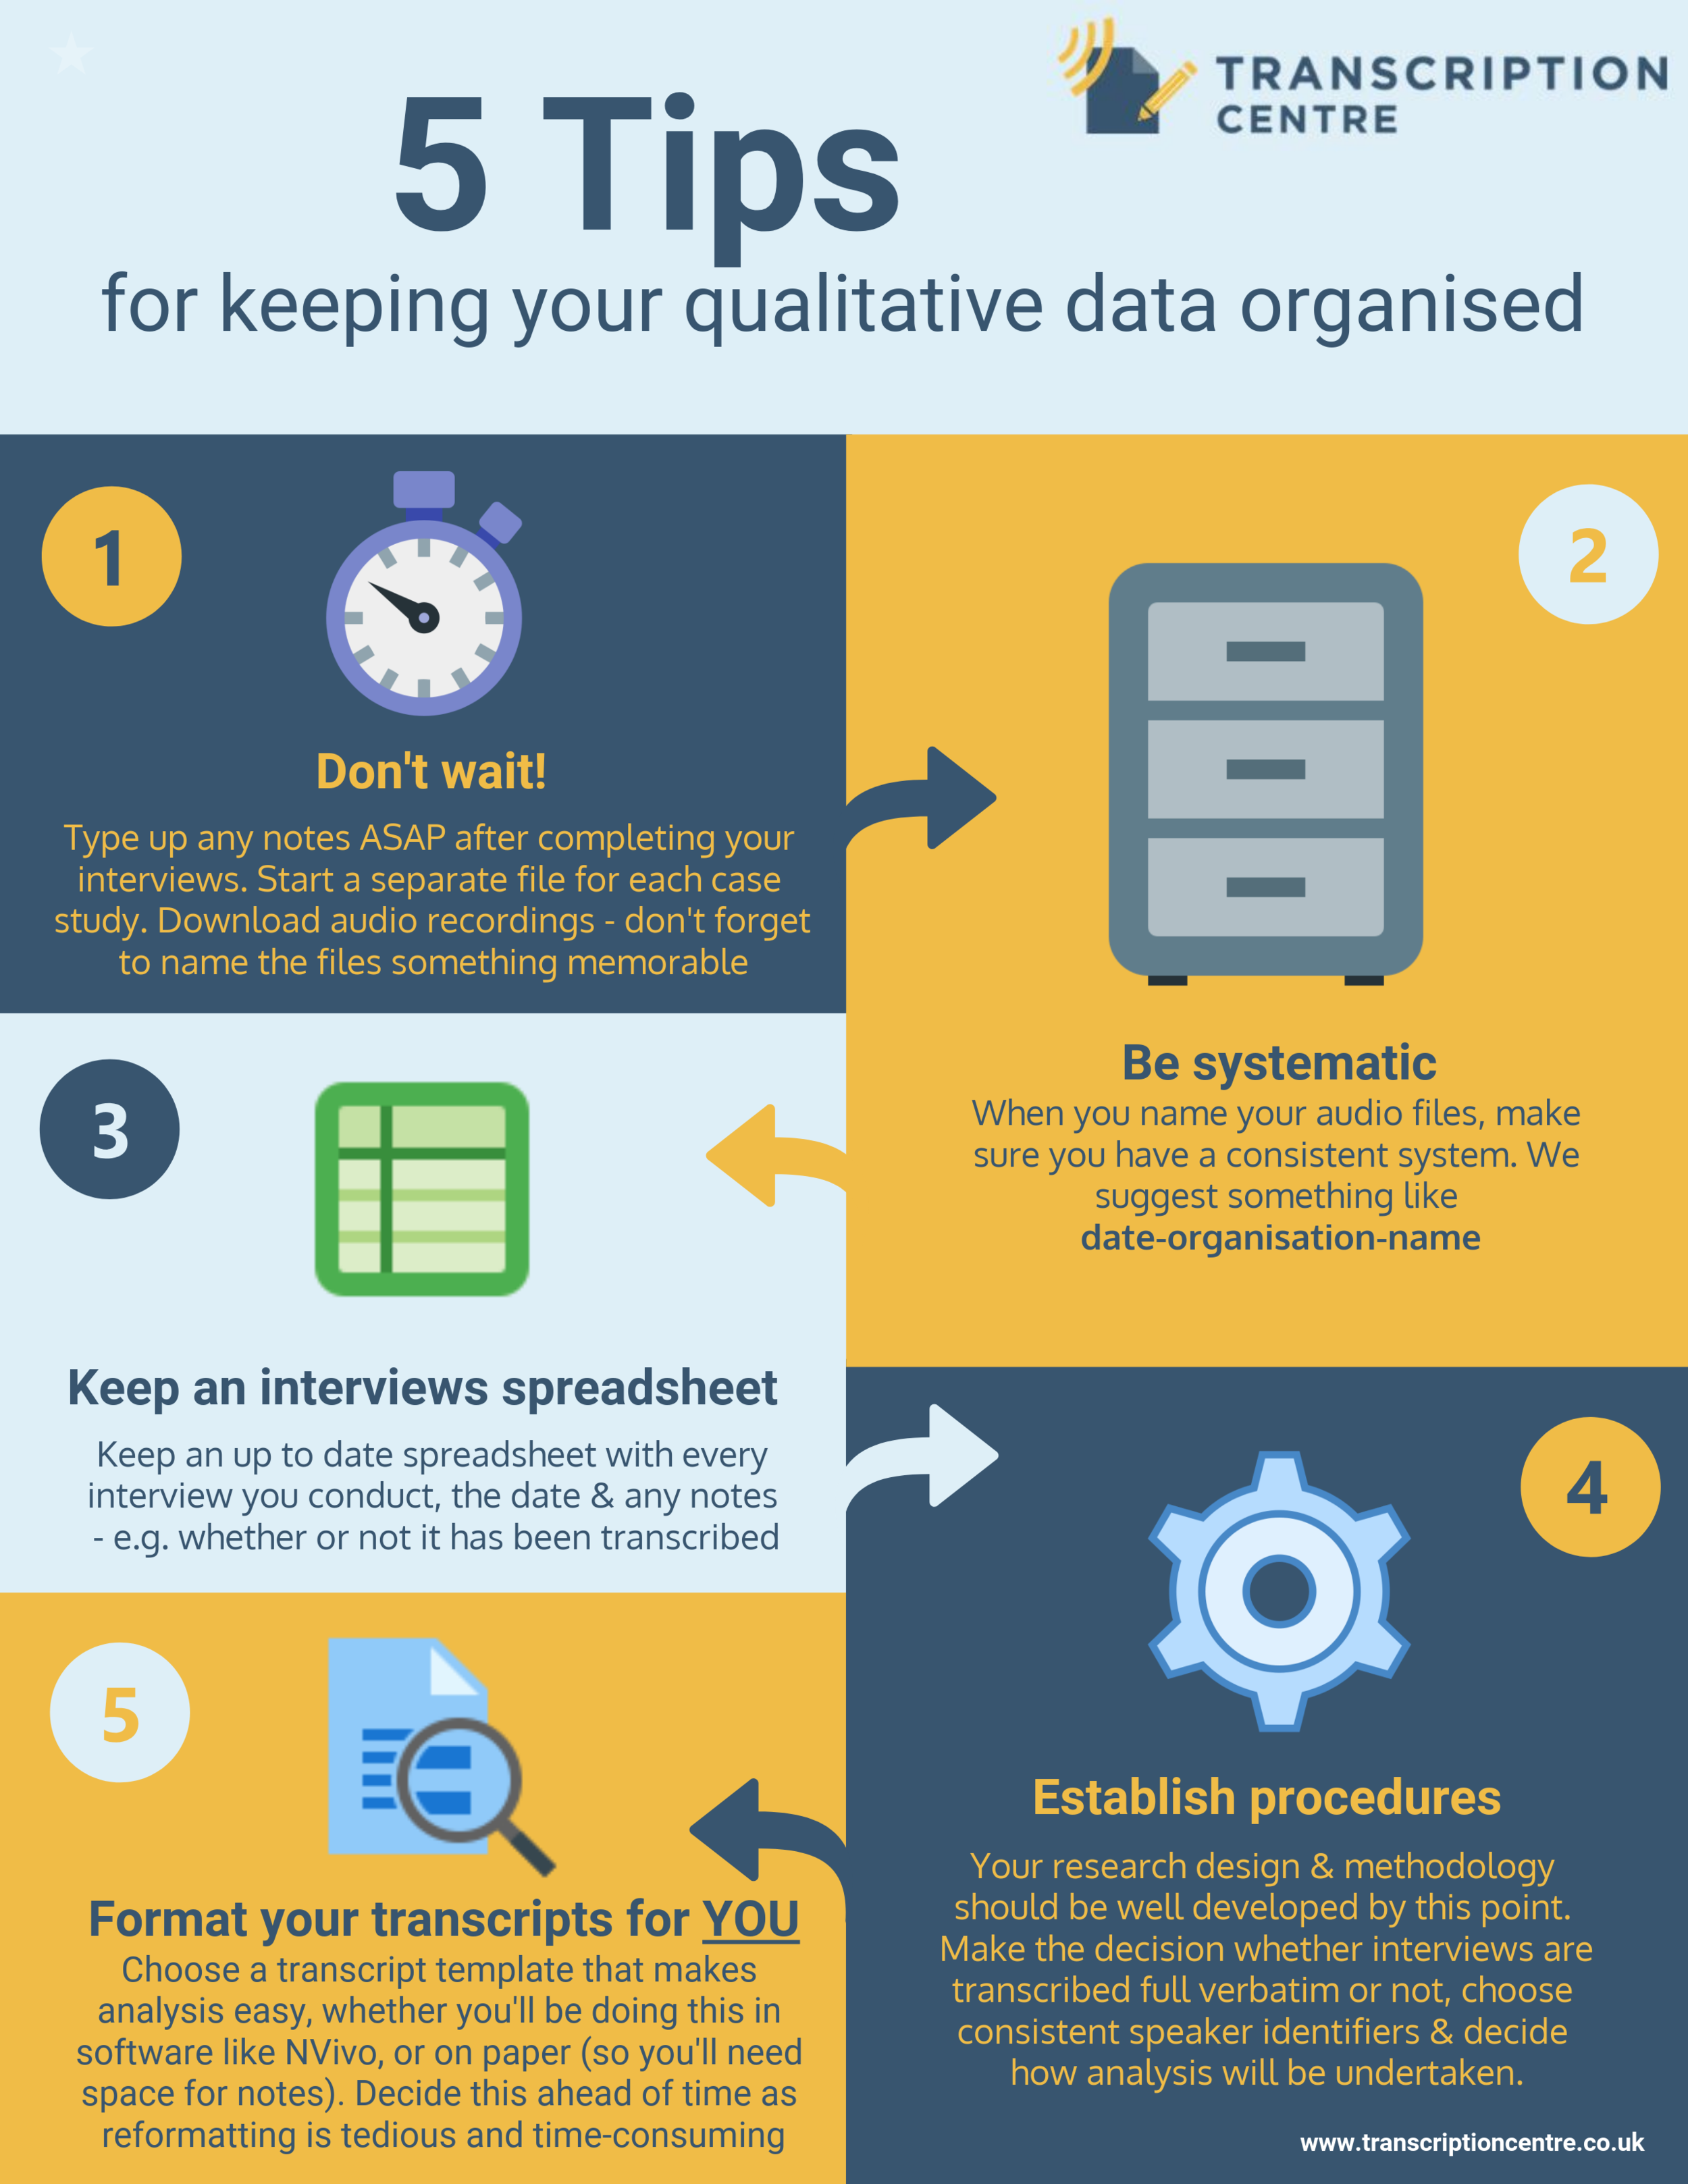 Five tips for keeping your qualitative data organised